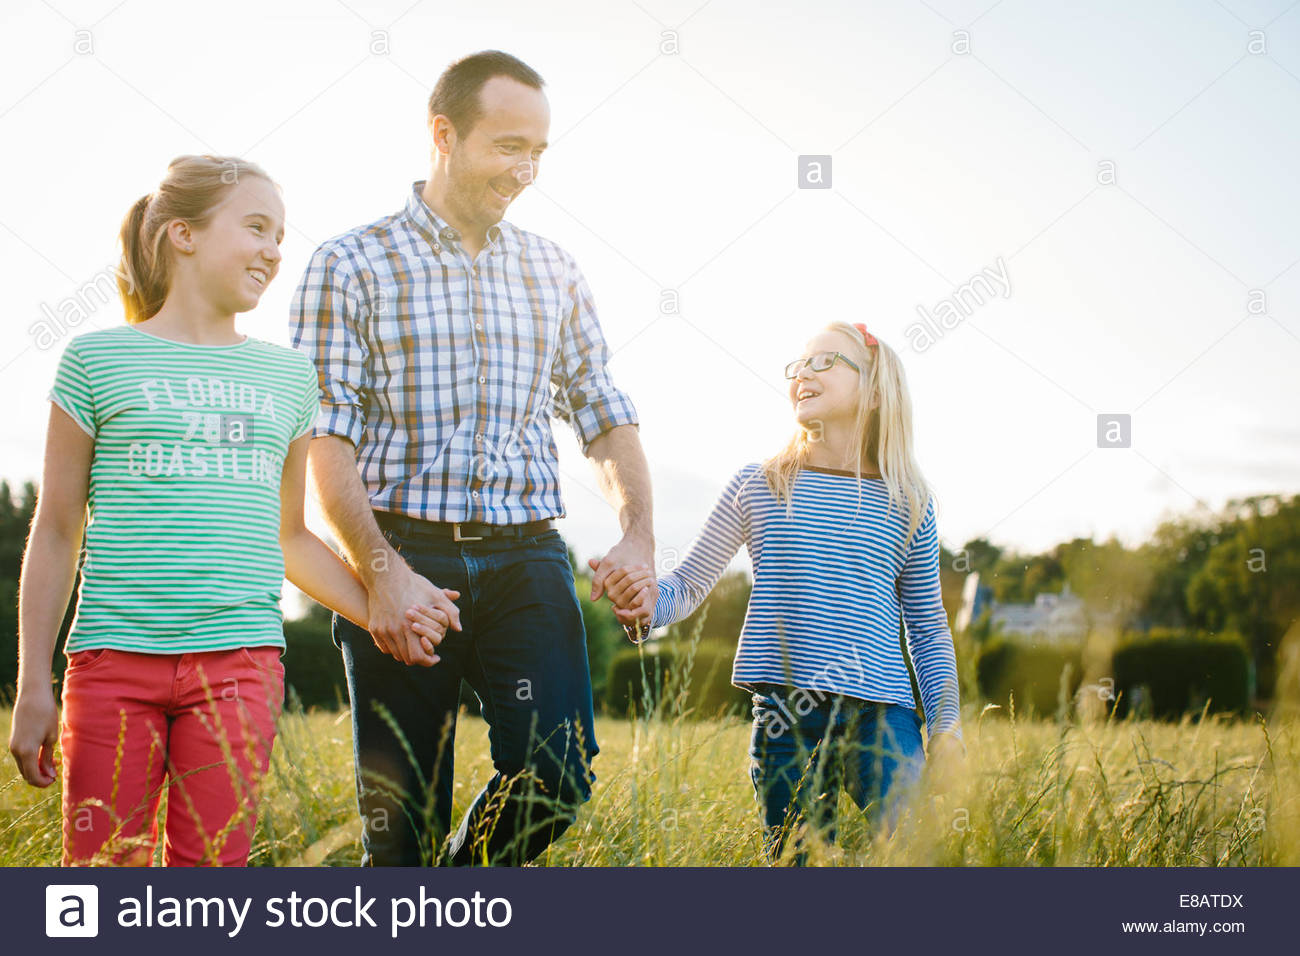 Father on walk with two daughters, holding hands - Stock Image